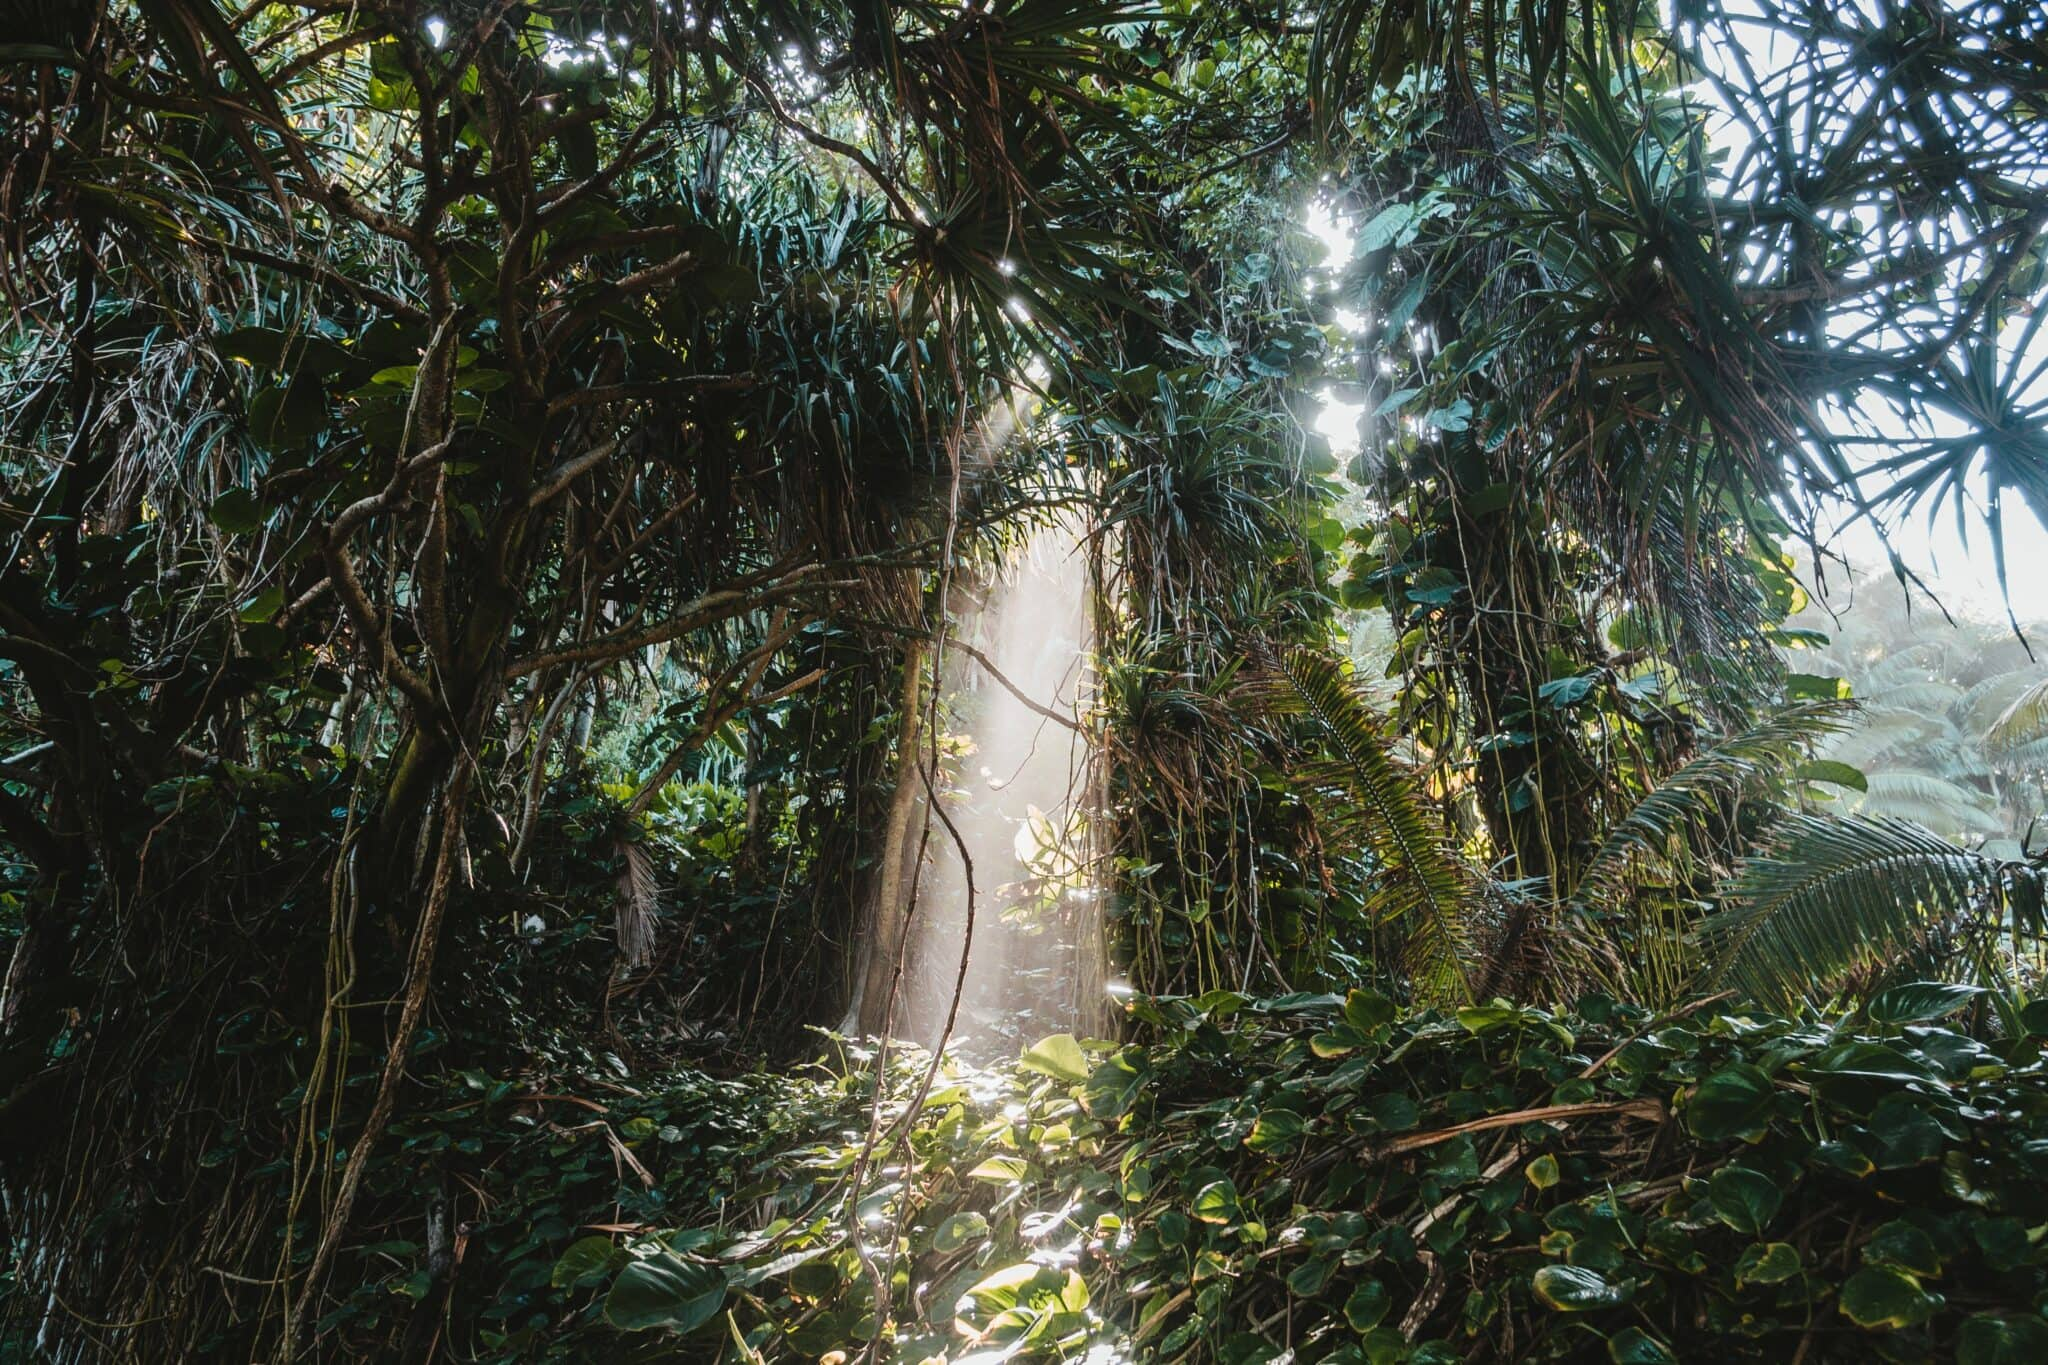 The Koluao Jungle is a magical place for a great imaginary journey for kids!